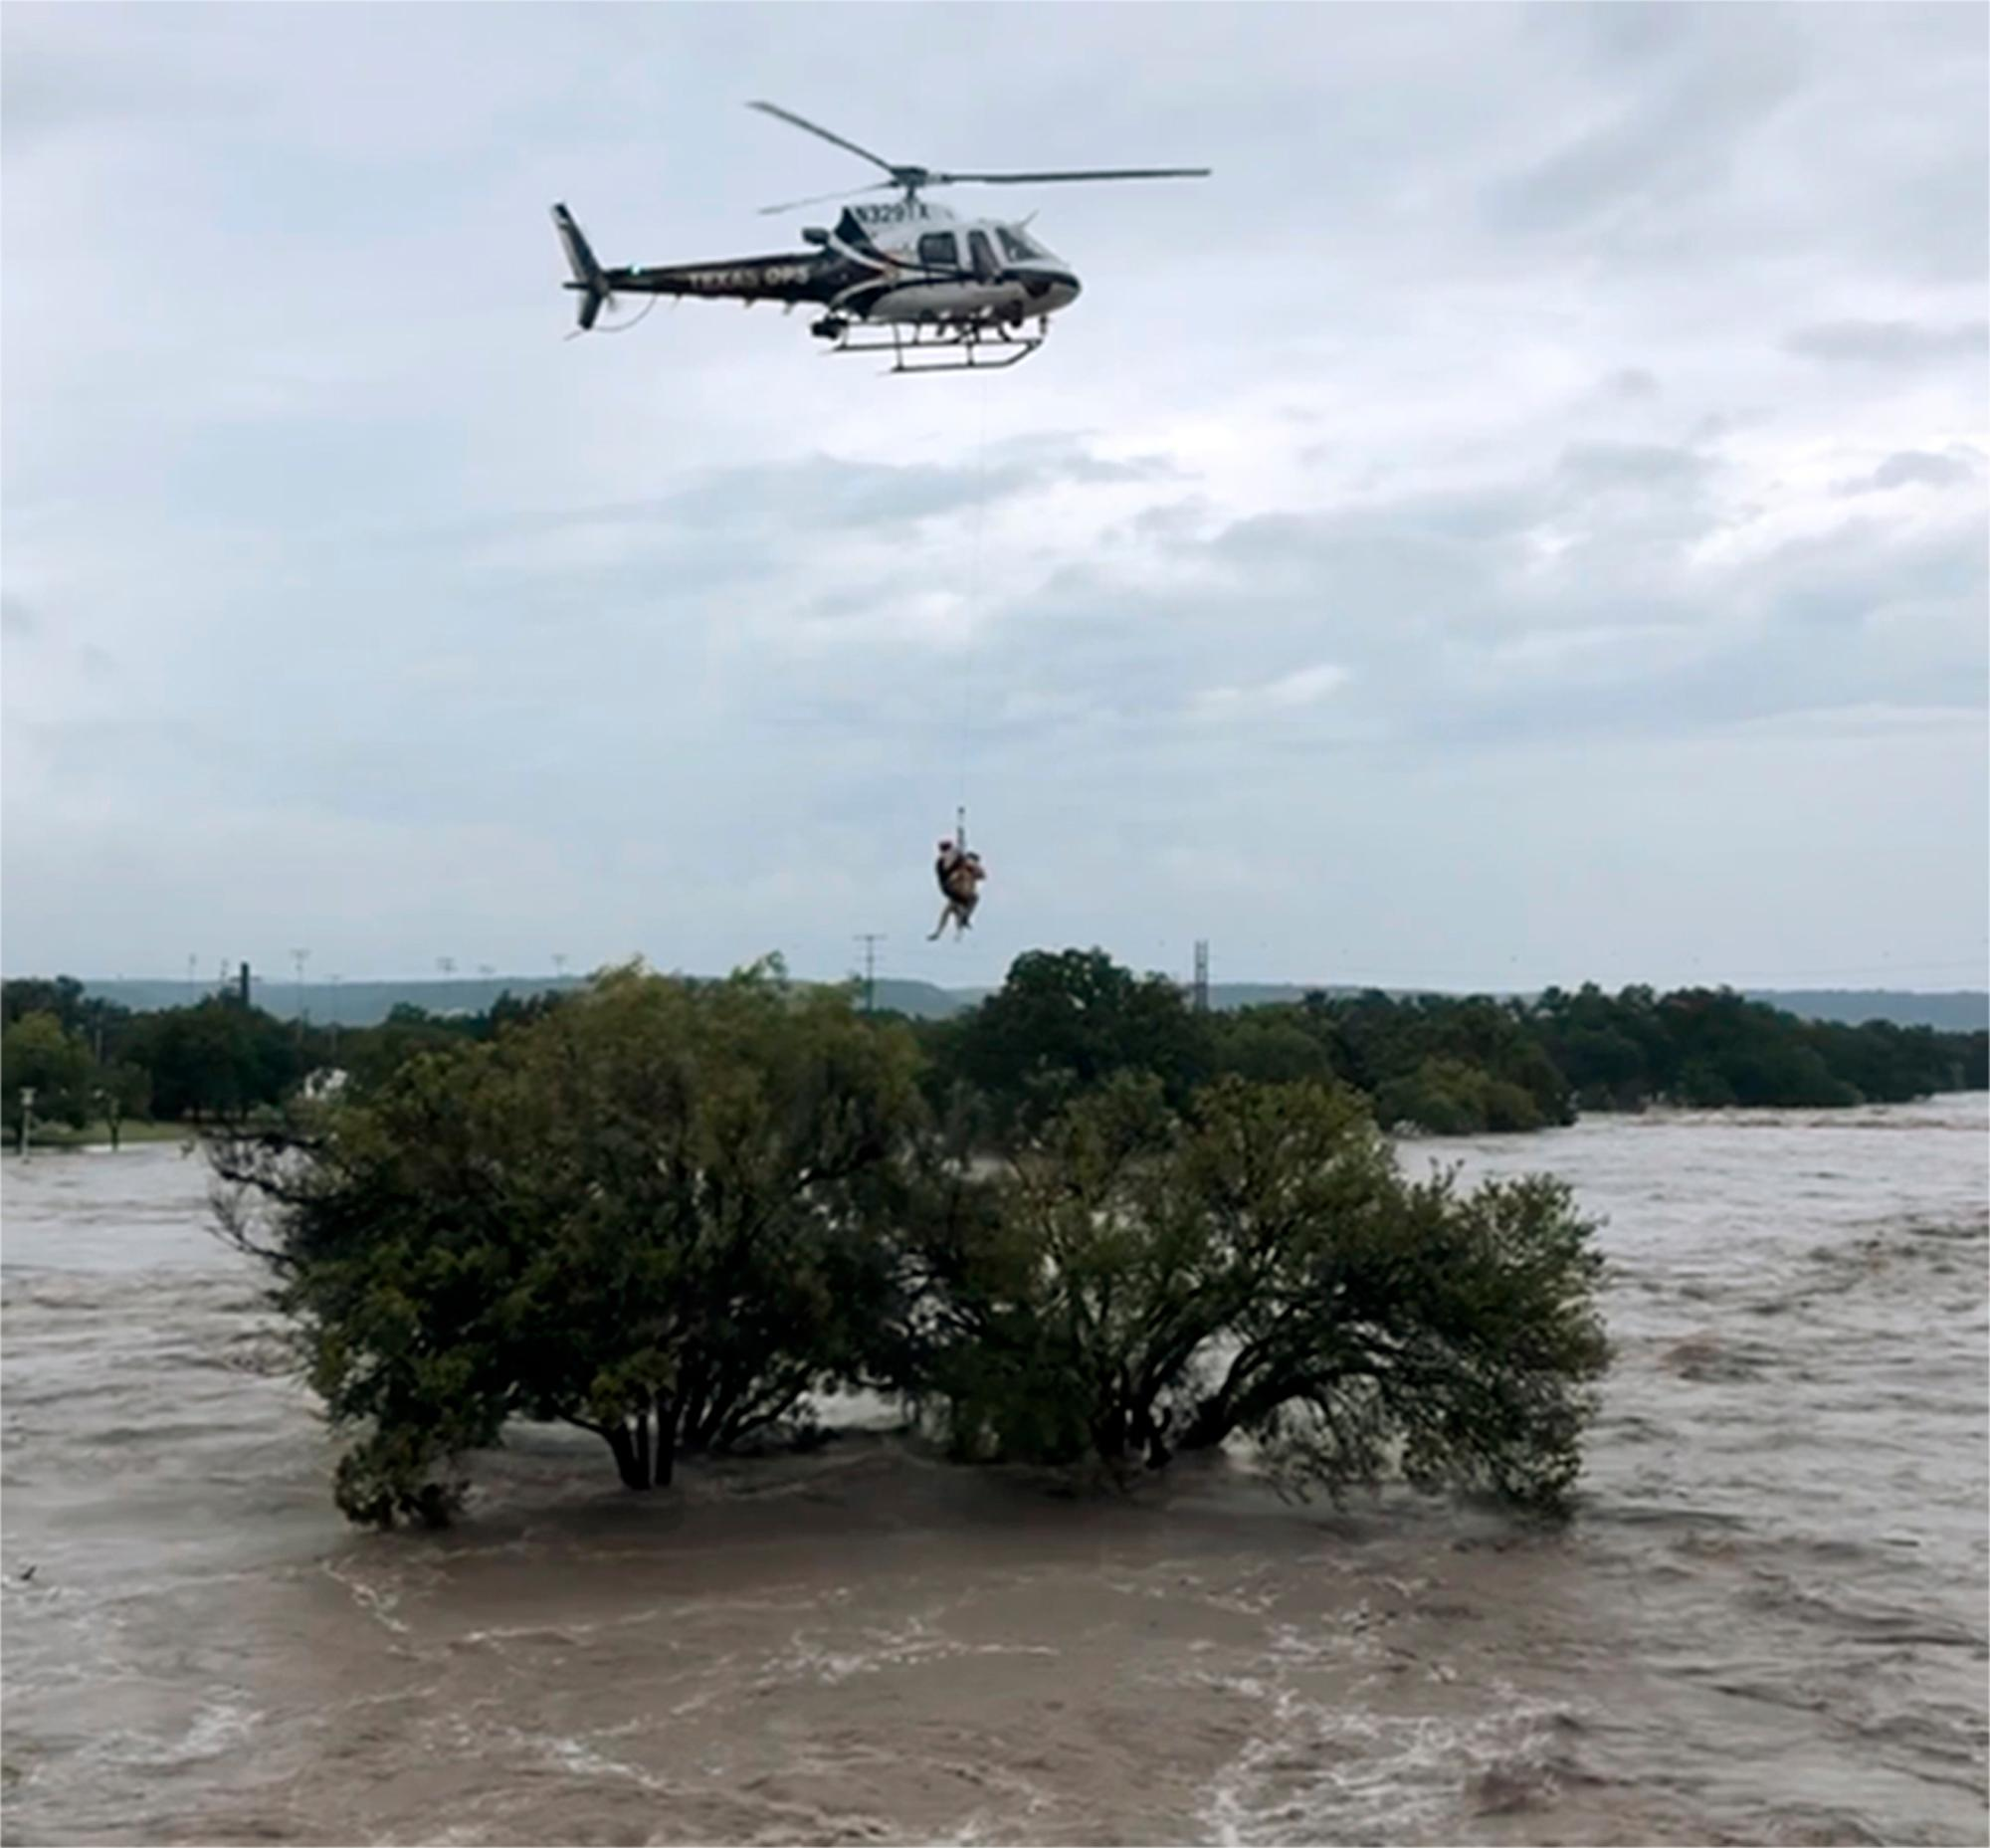 This photo from video provided by the Texas Parks and Wildlife Department shows a helicopter crew from the Texas Department of Public Safety performing a rescue from the South Llano River near Junction, Texas, on Monday, Oct. 8, 2018. (Texas Parks and Wildlife Department via AP)